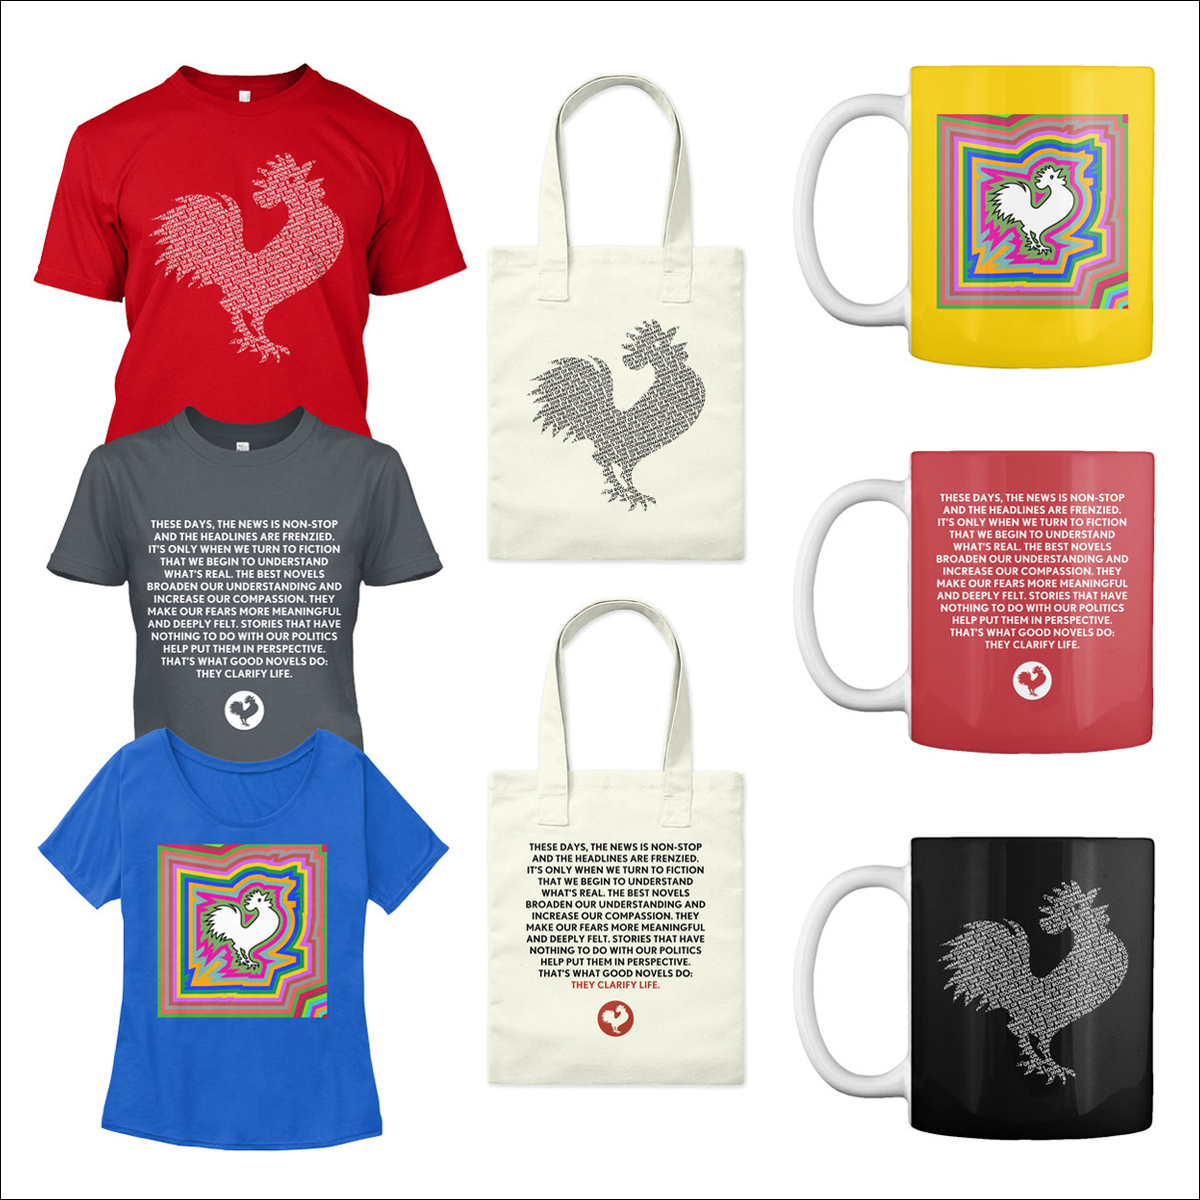 2018 Tournament of Books Merch